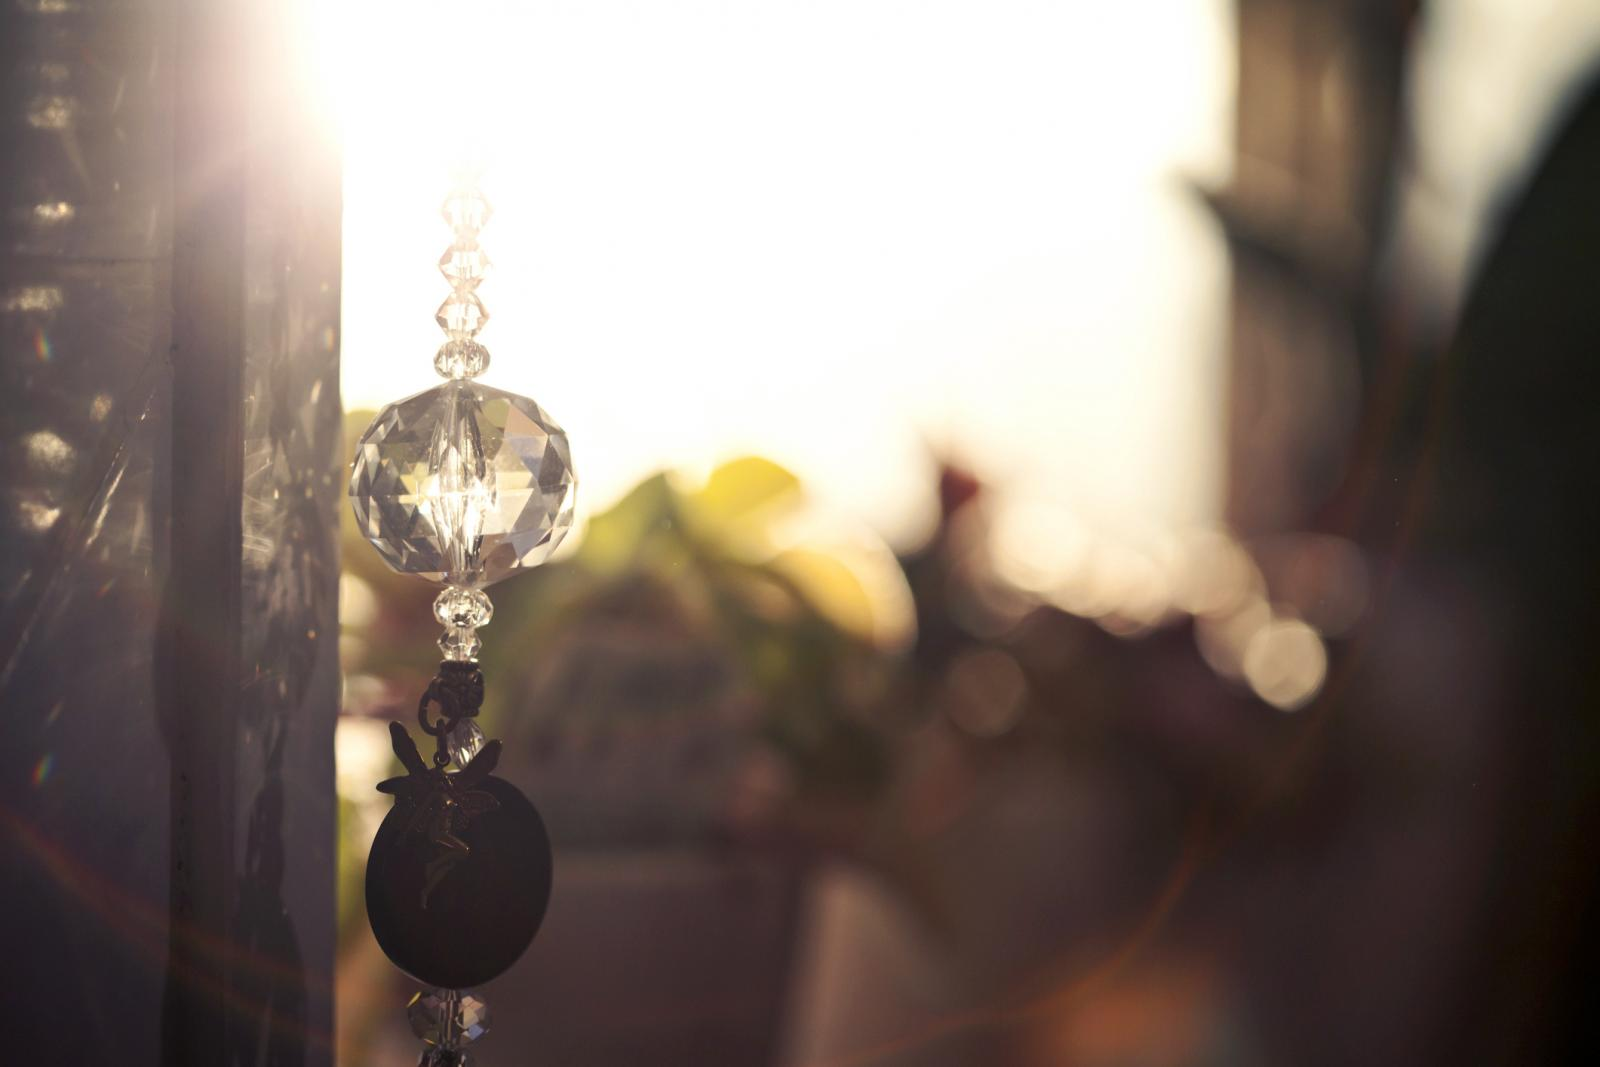 Glass sun catcher hanging next to a window glowing with early morning light